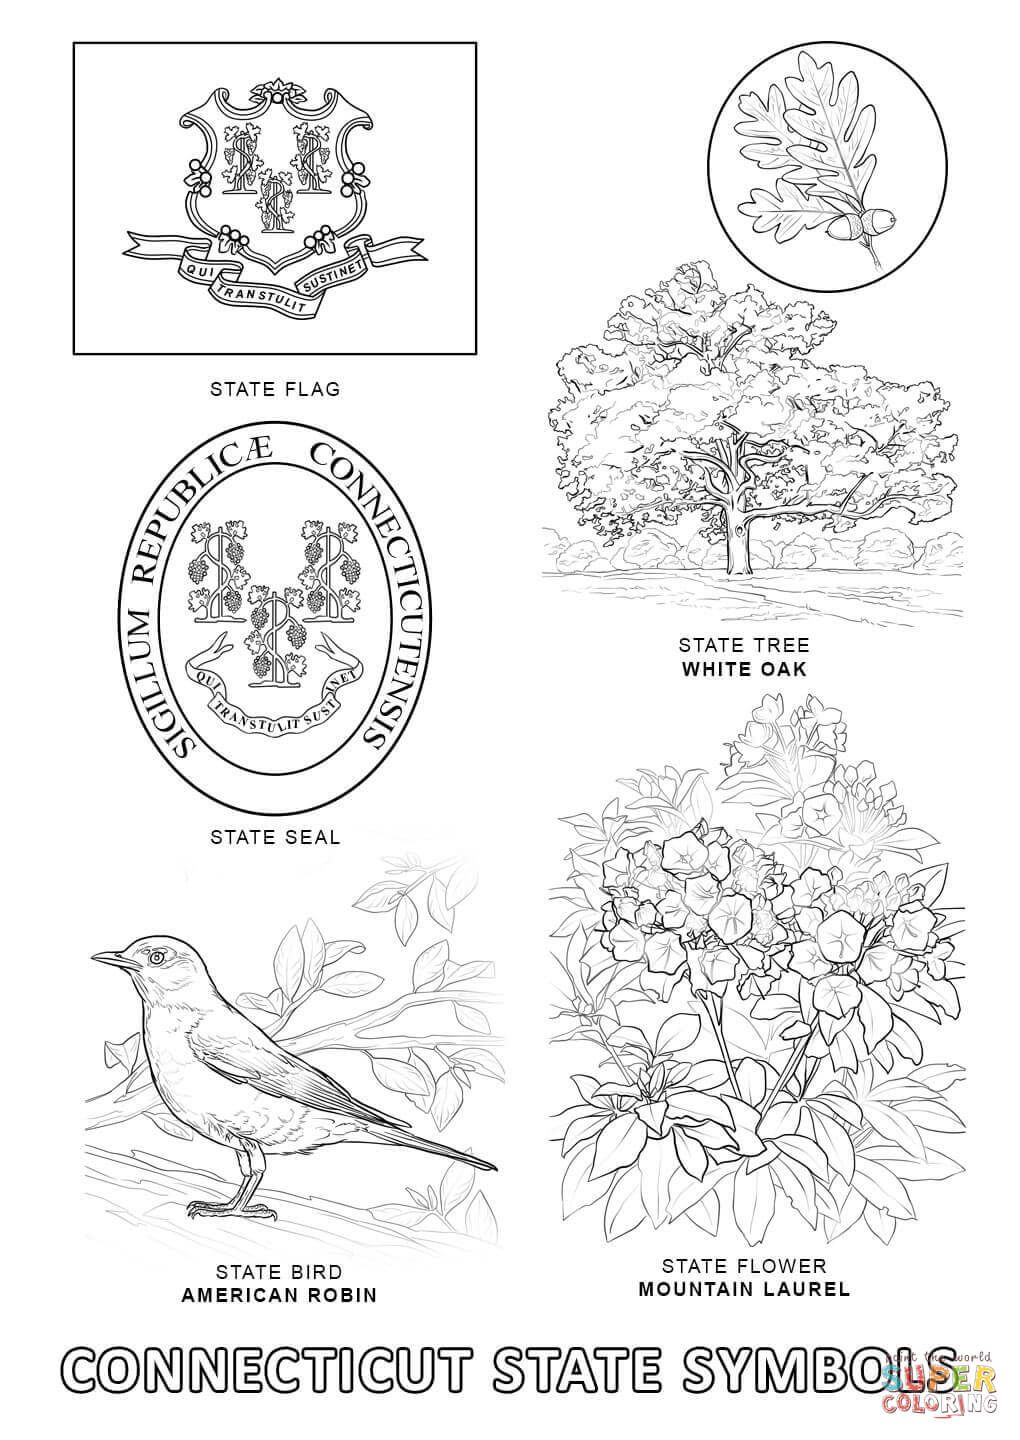 Connecticut State Symbols Coloring Page From Connecticut Category